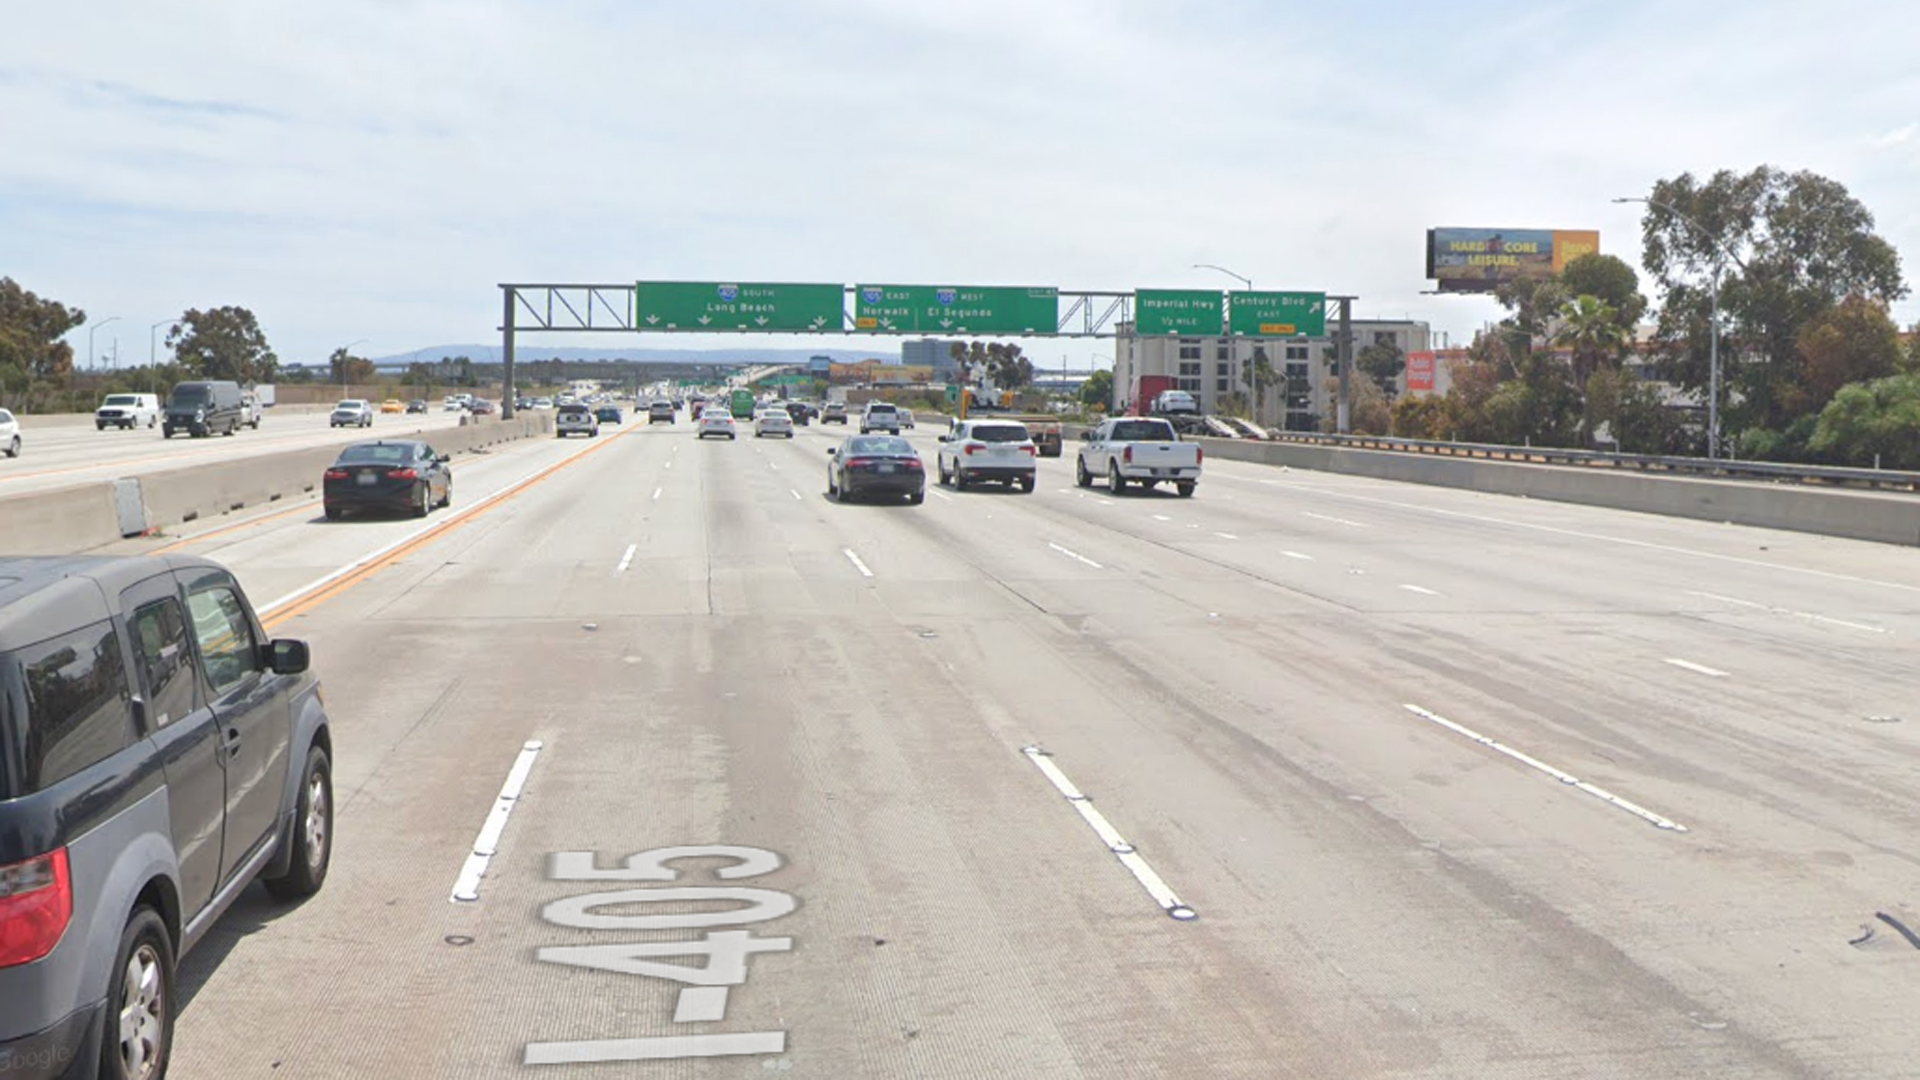 The southbound 405 Freeway, approaching Century Boulevard, in Inglewood, as viewed in a Google Street View image.